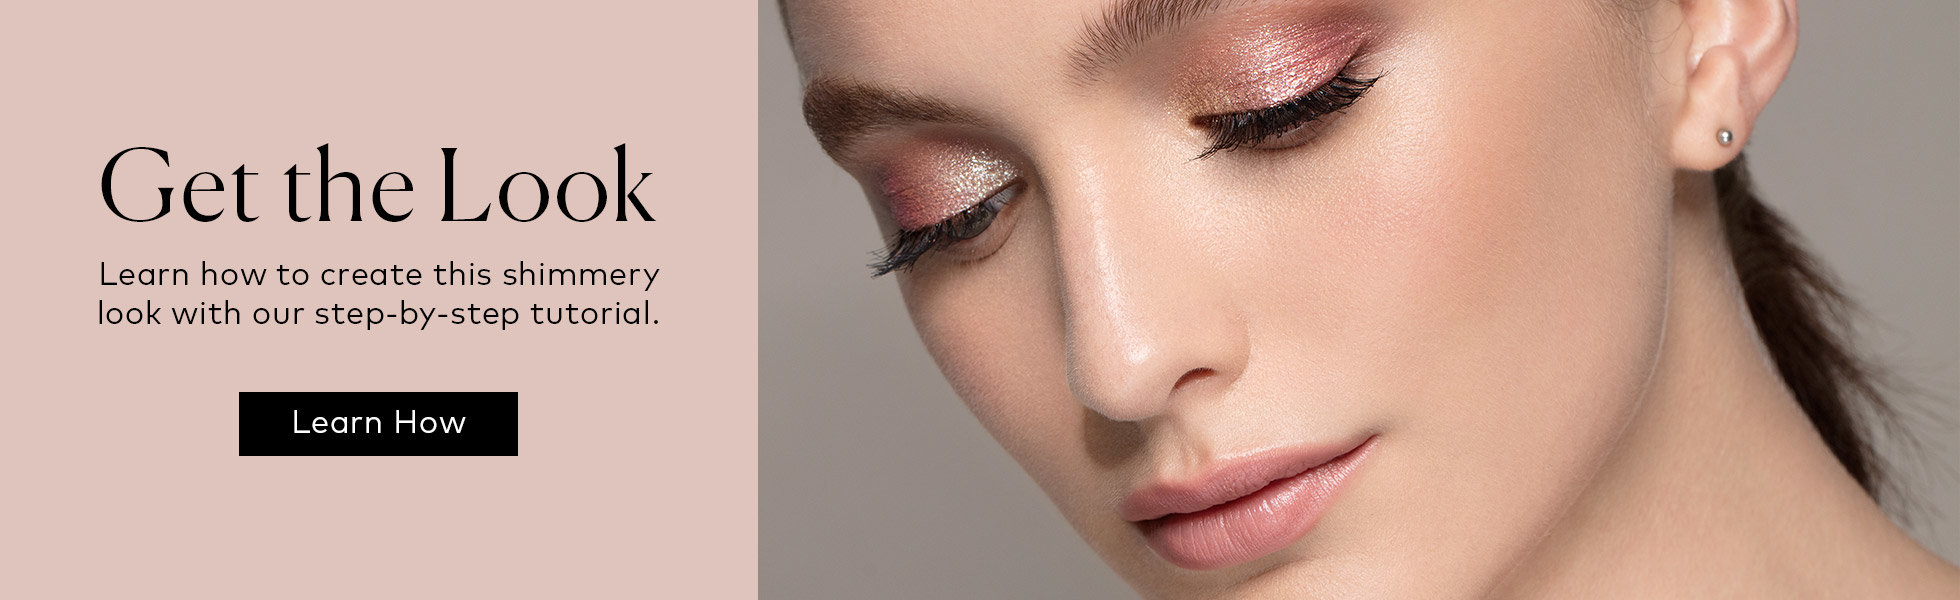 See our tutorial to learn how to create this look using the Stila Iridescent Glitter & Glow Liquid Eye Shadow Set